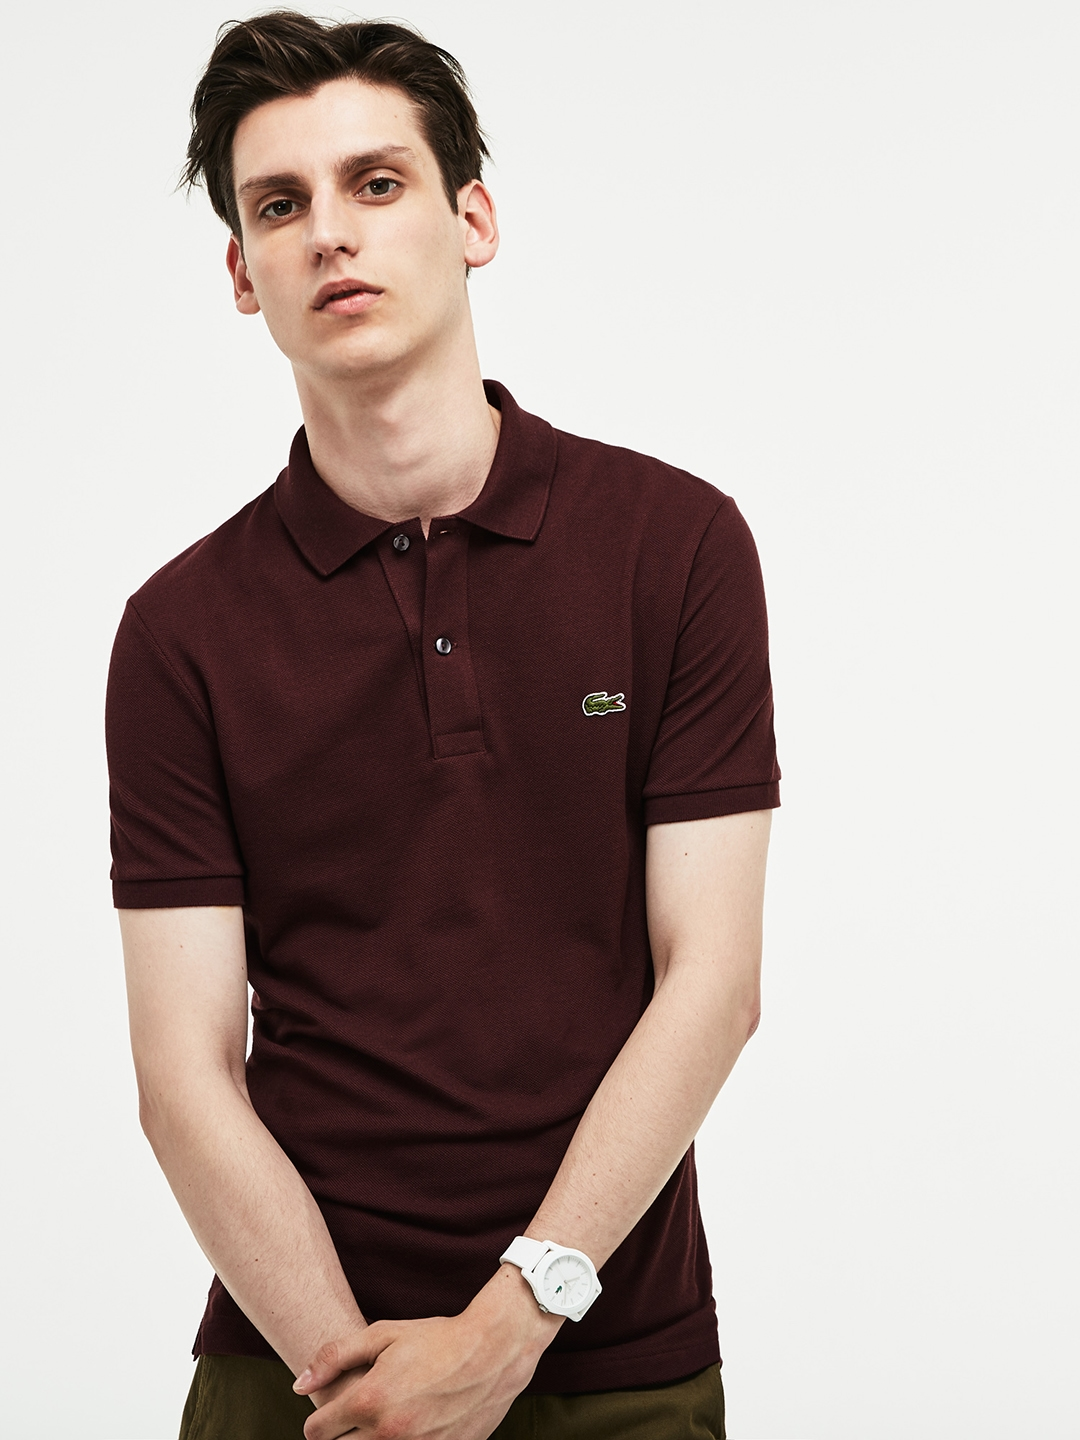 88c96b2ac Buy Lacoste Men Maroon Slim Fit Polo In Petit Pique - Tshirts for ...